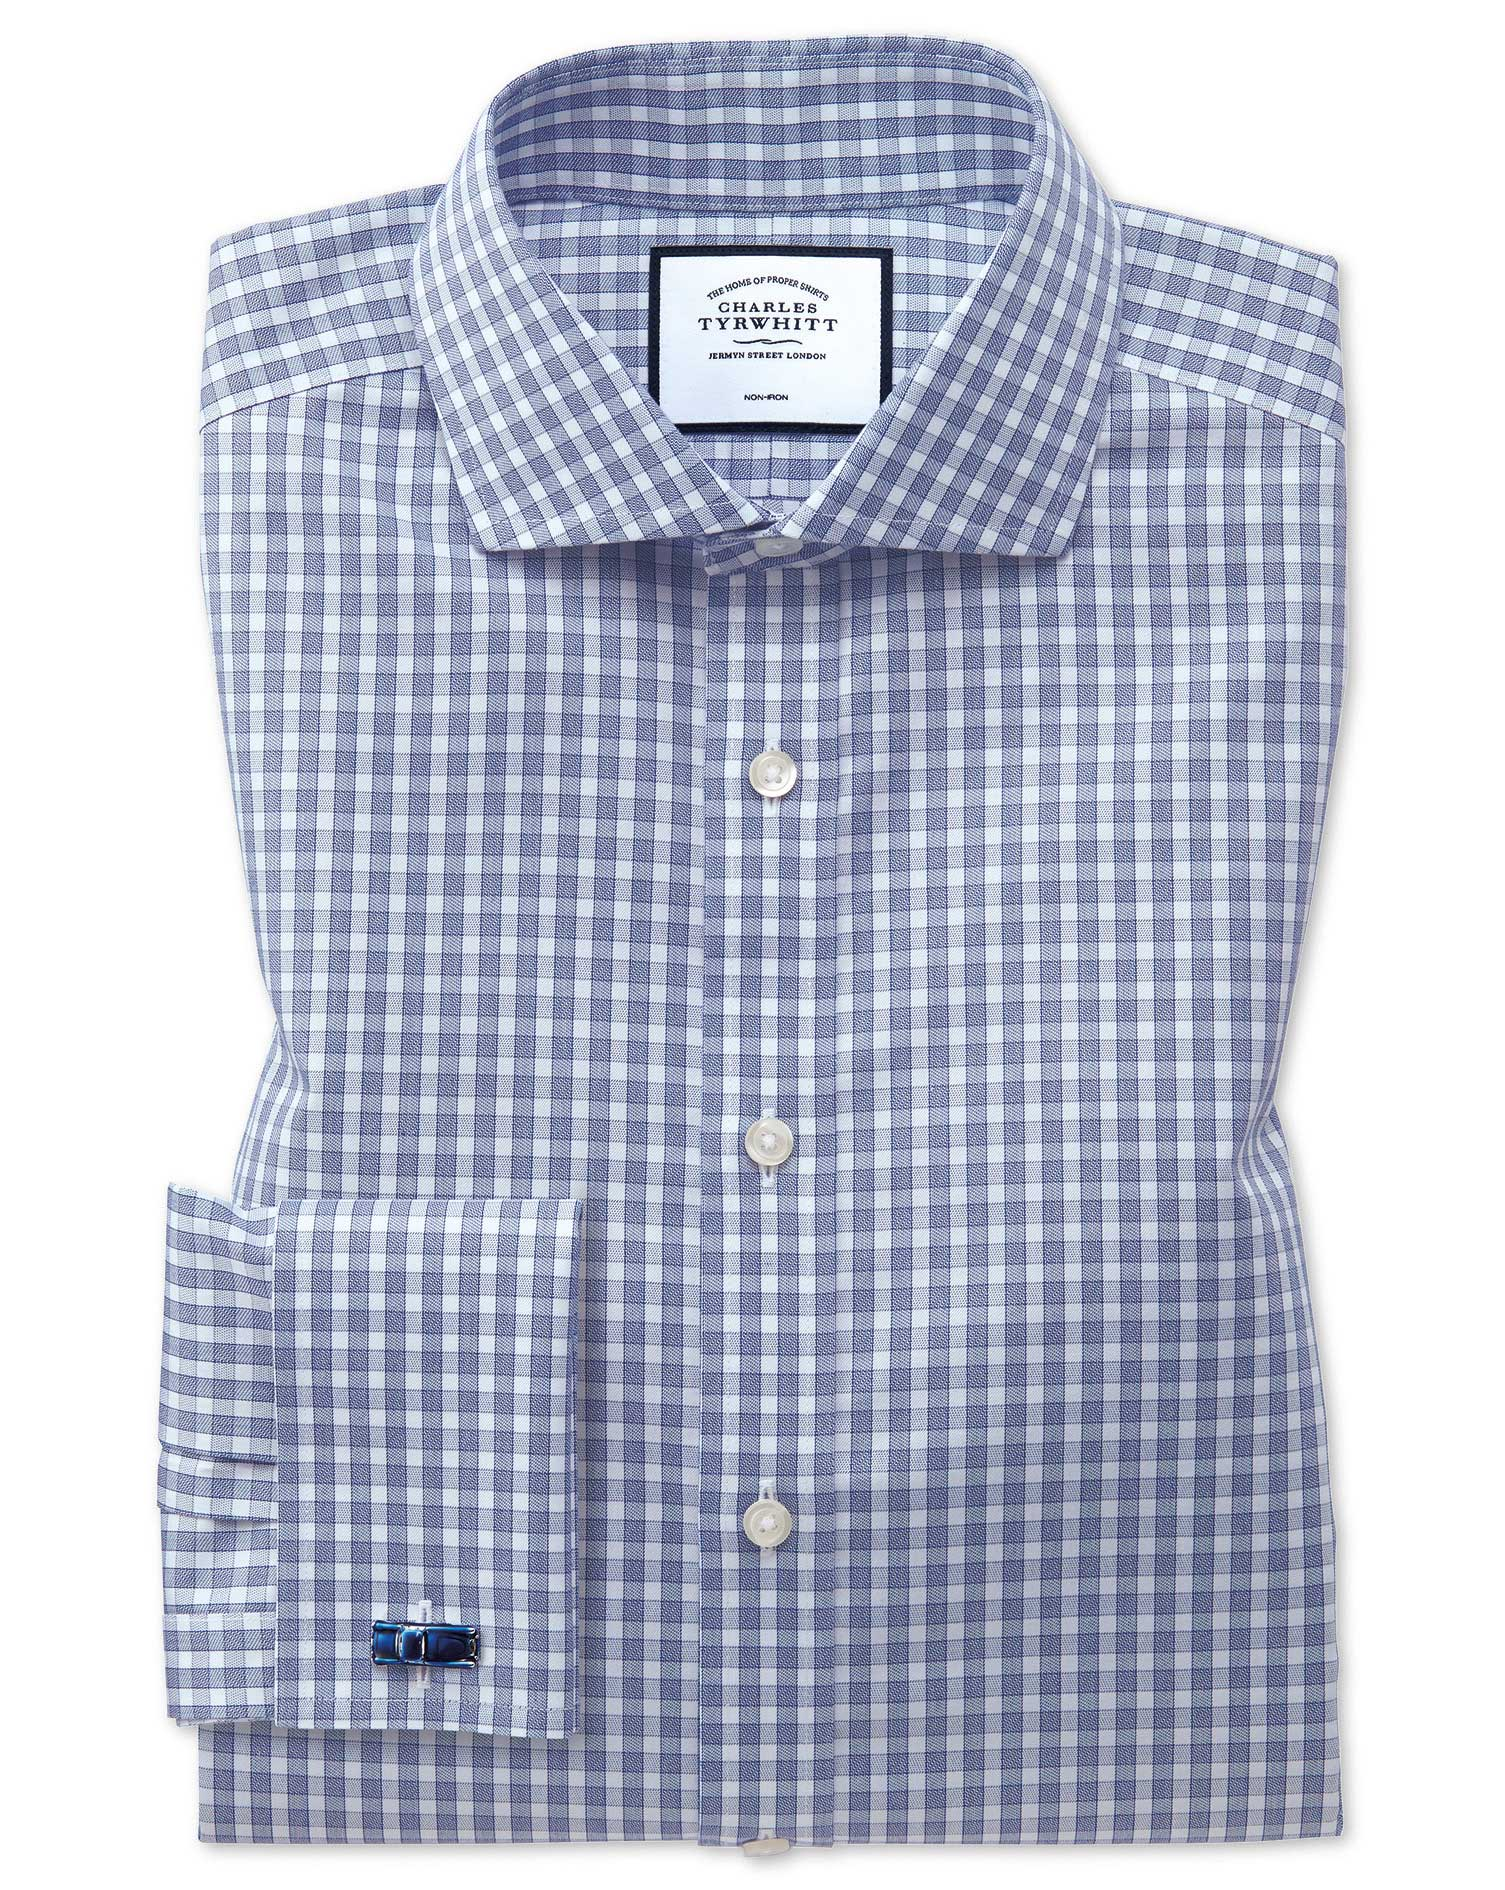 Extra Slim Fit Non-Iron Twill Gingham Blue Cotton Formal Shirt Double Cuff Size 15.5/33 by Charles T